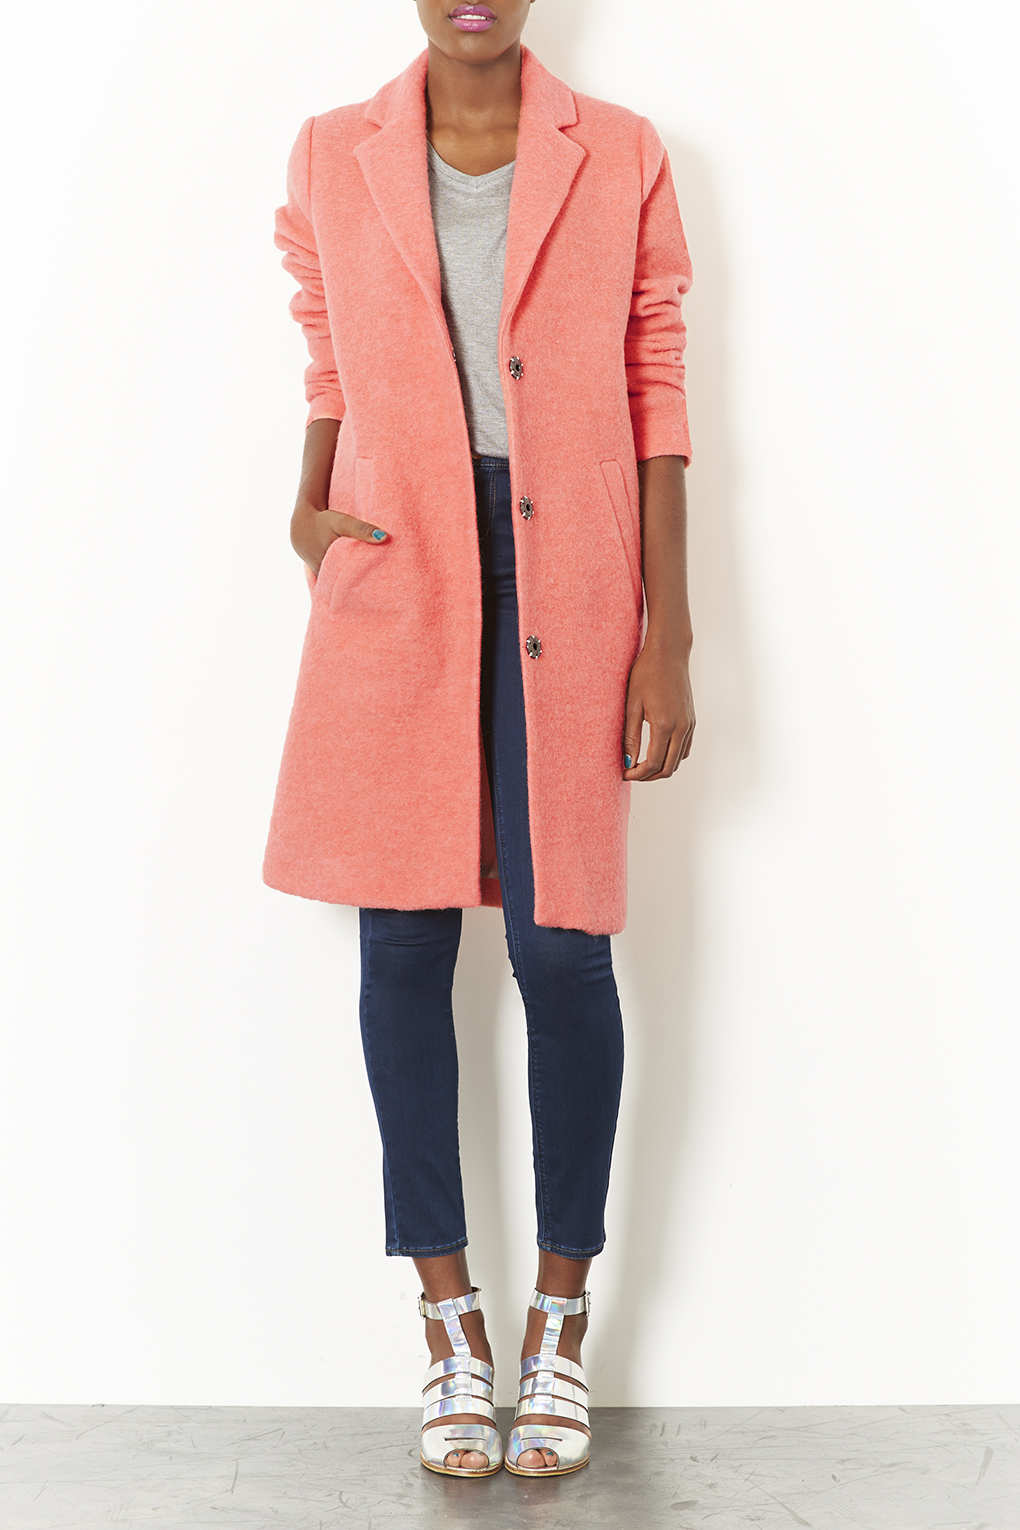 Topshop Wool Boyfriend Coat in Pink | Lyst